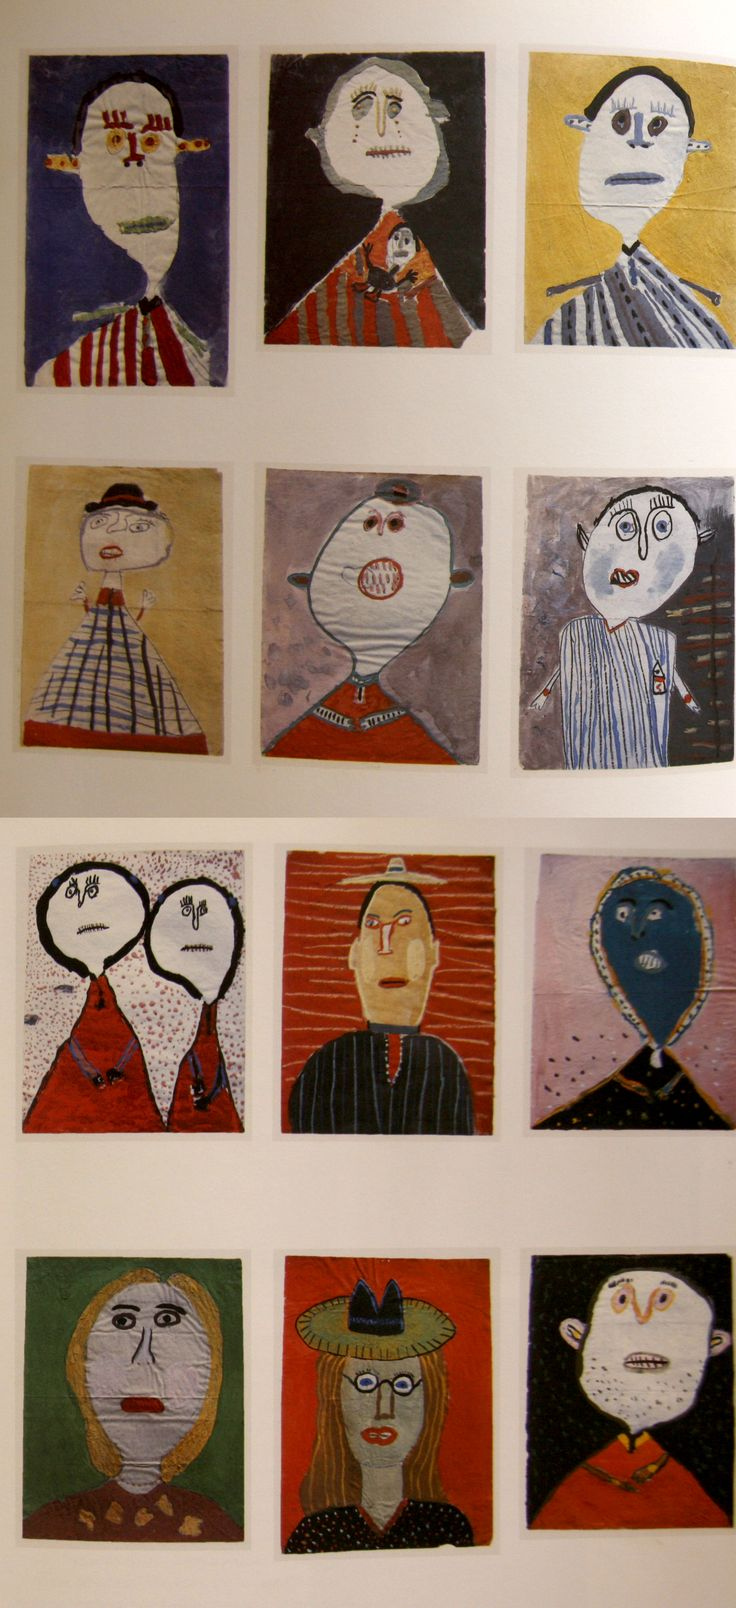 'Children's Drawings from the collection of Jean Dubuffet' - Book, The Innocent Eye by Jonathan Finebergk